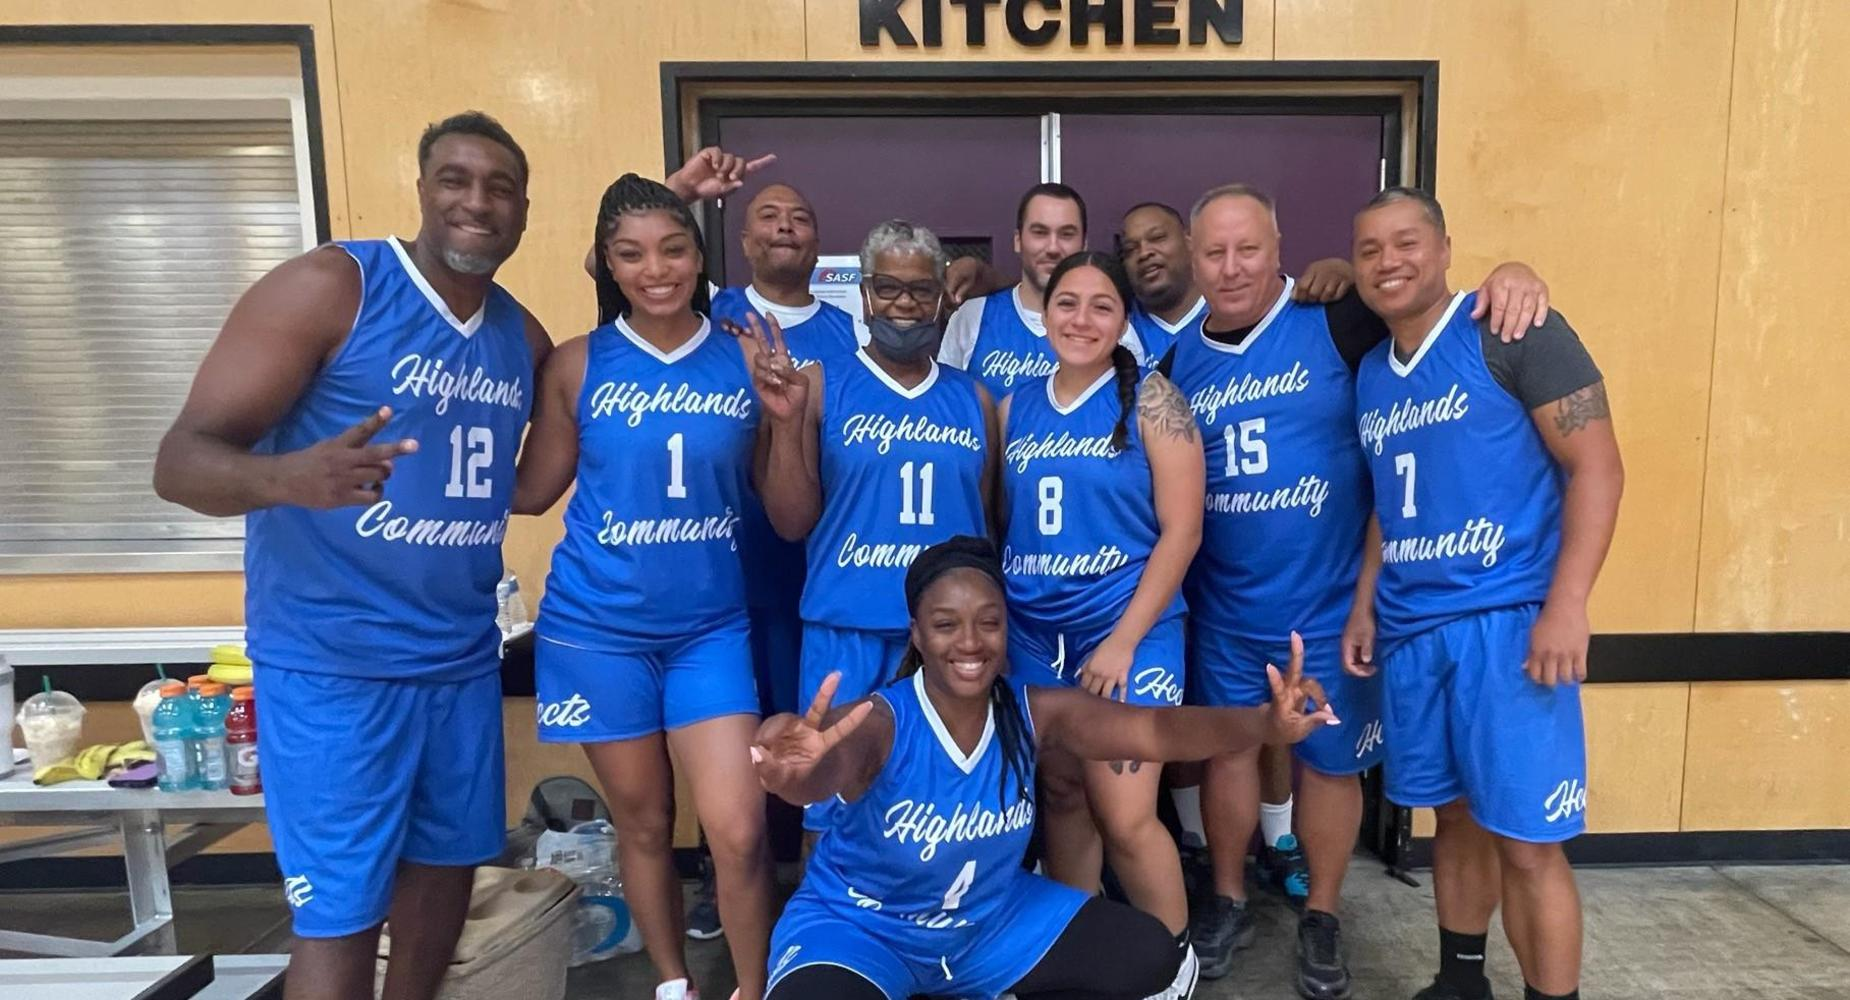 Highlands Basketball team for the Summer Slam event. Team pictured in blue jerseys.